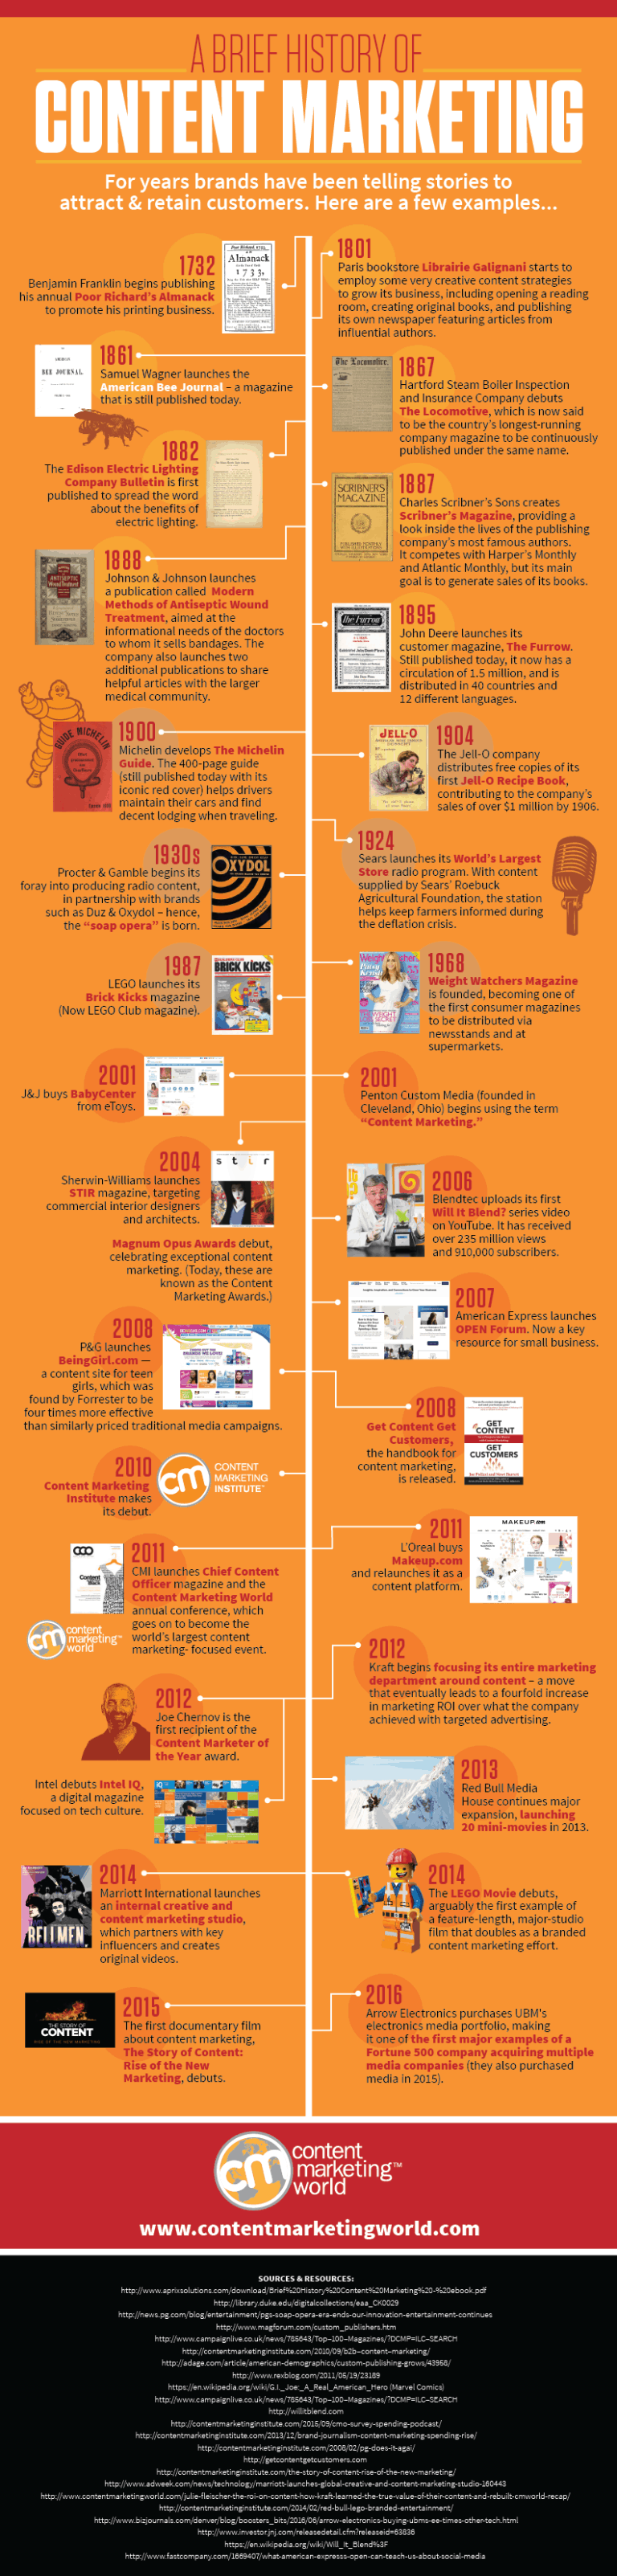 Content marketing historia